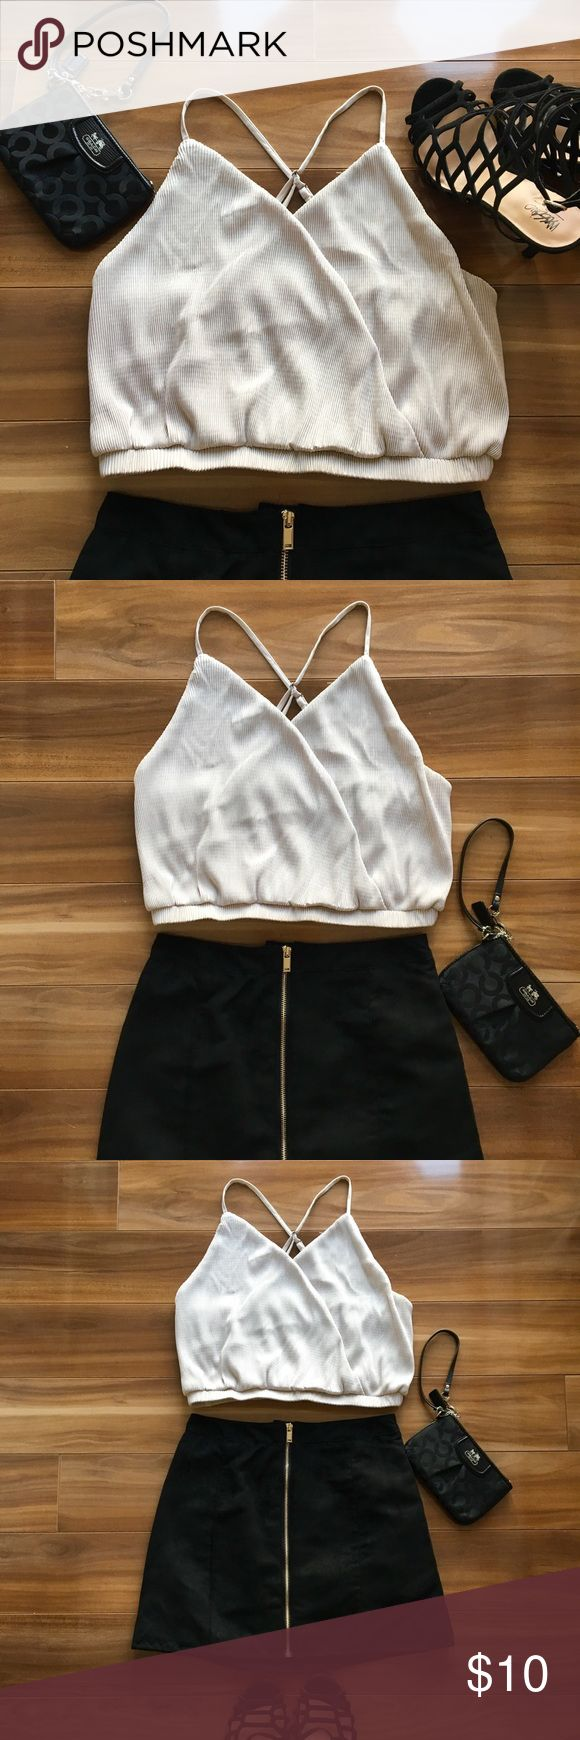 Sexy silver crop top 🥂 Perfect for date night or a girl's night out 🍾 Sexy silver crop top with straps can be paired with anything!   🌟Adjustable straps 🌟95% polyester, 5% spandex 🌟Large 🌟Hand wash recommended  🌺Make an offer 💰Bundle and save Tops Crop Tops